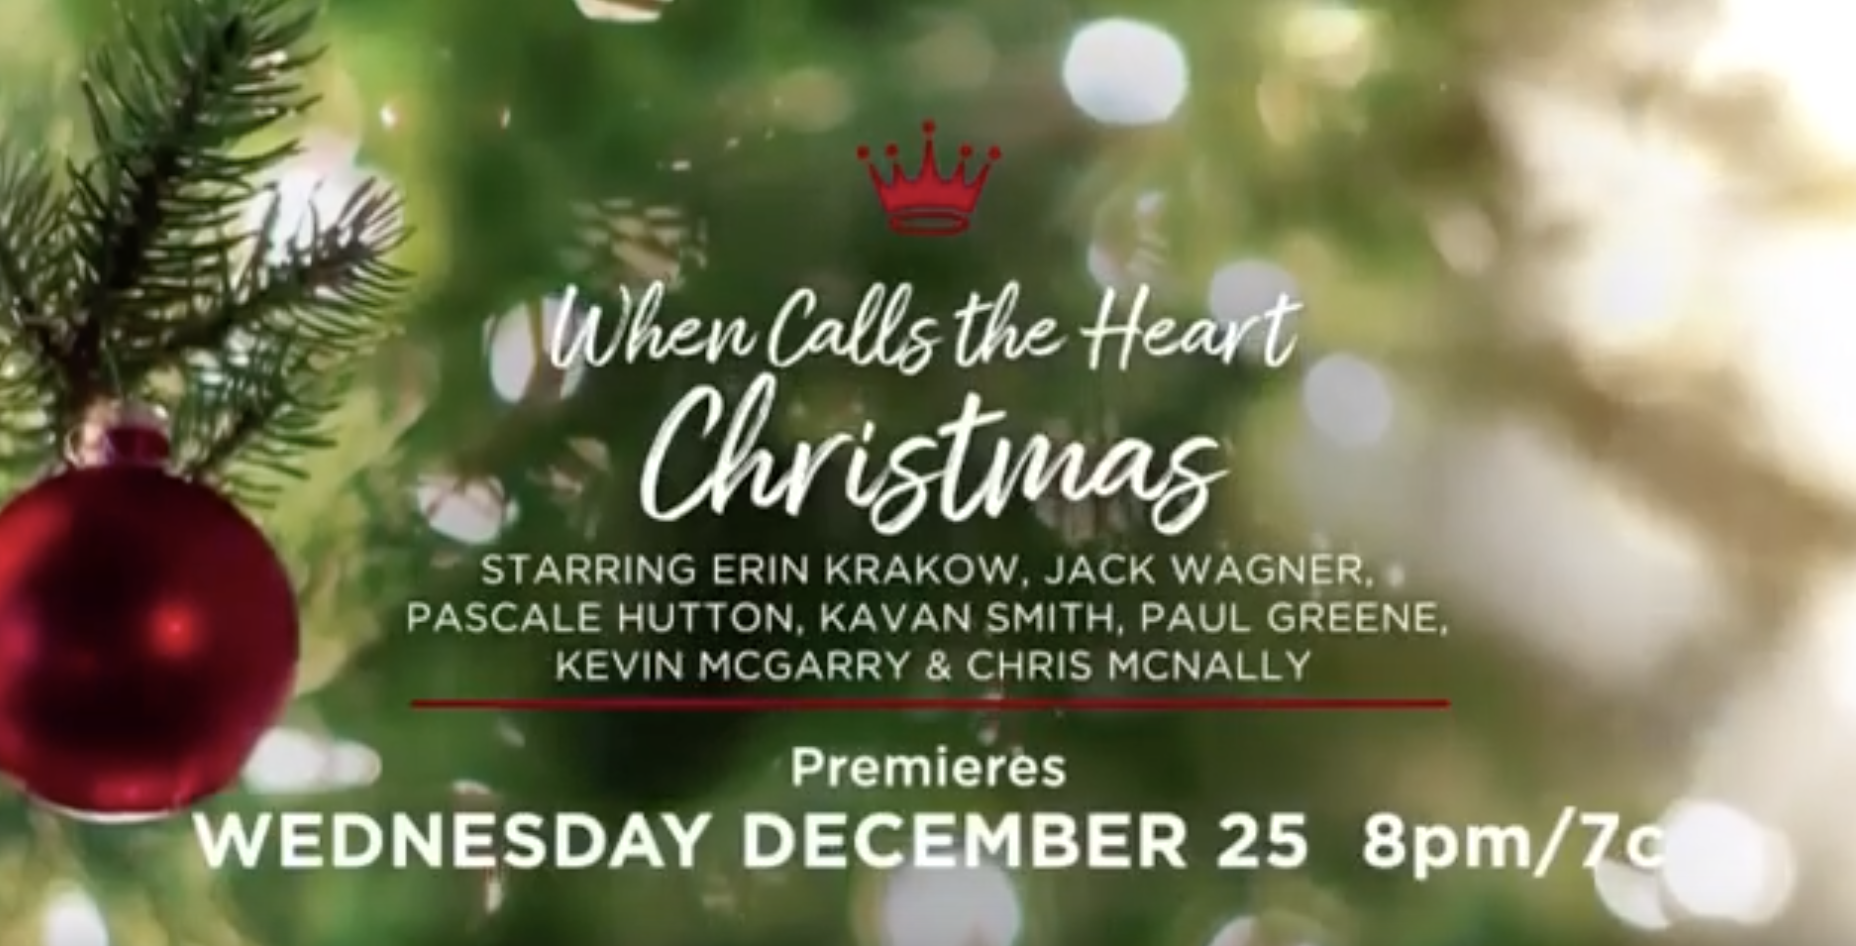 'When Calls the Heart' just teased season 7 and a Christmas special. There is still no Lori Loughlin